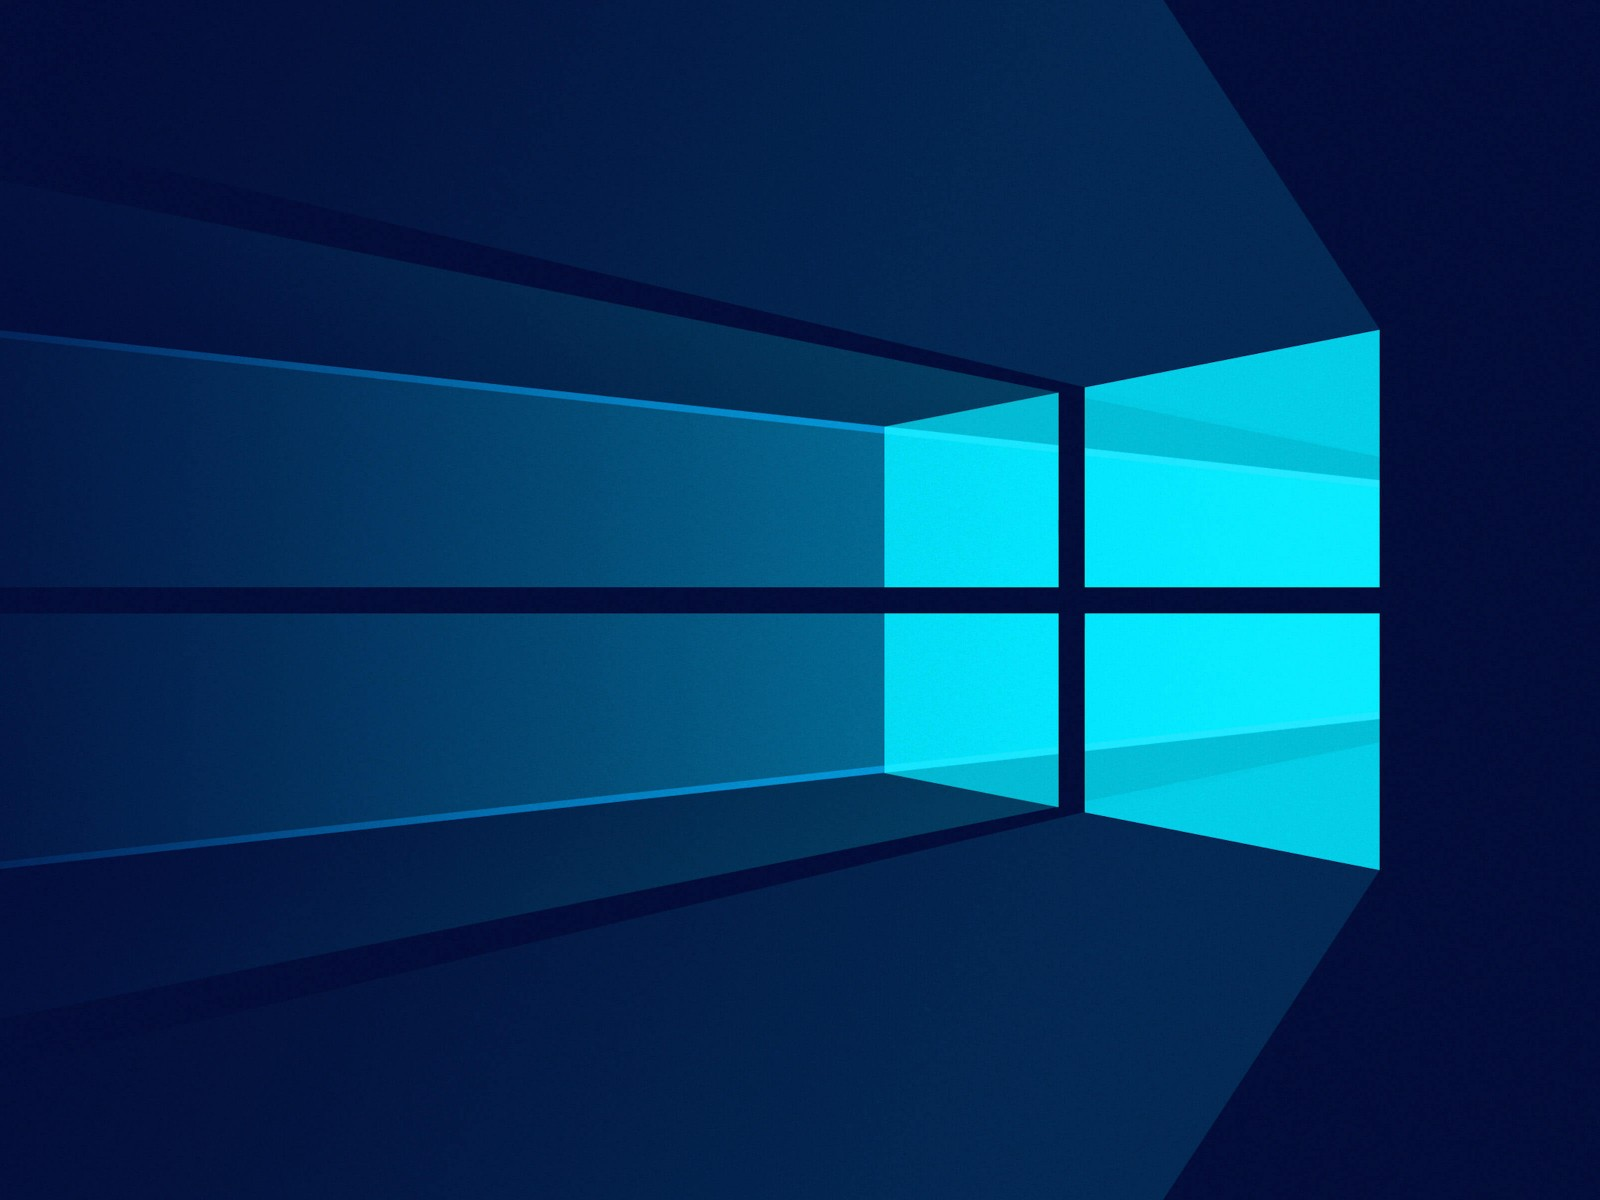 Windows 10 Flat HD wallpaper for 1600 x 1200   HDwallpapersnet 1600x1200